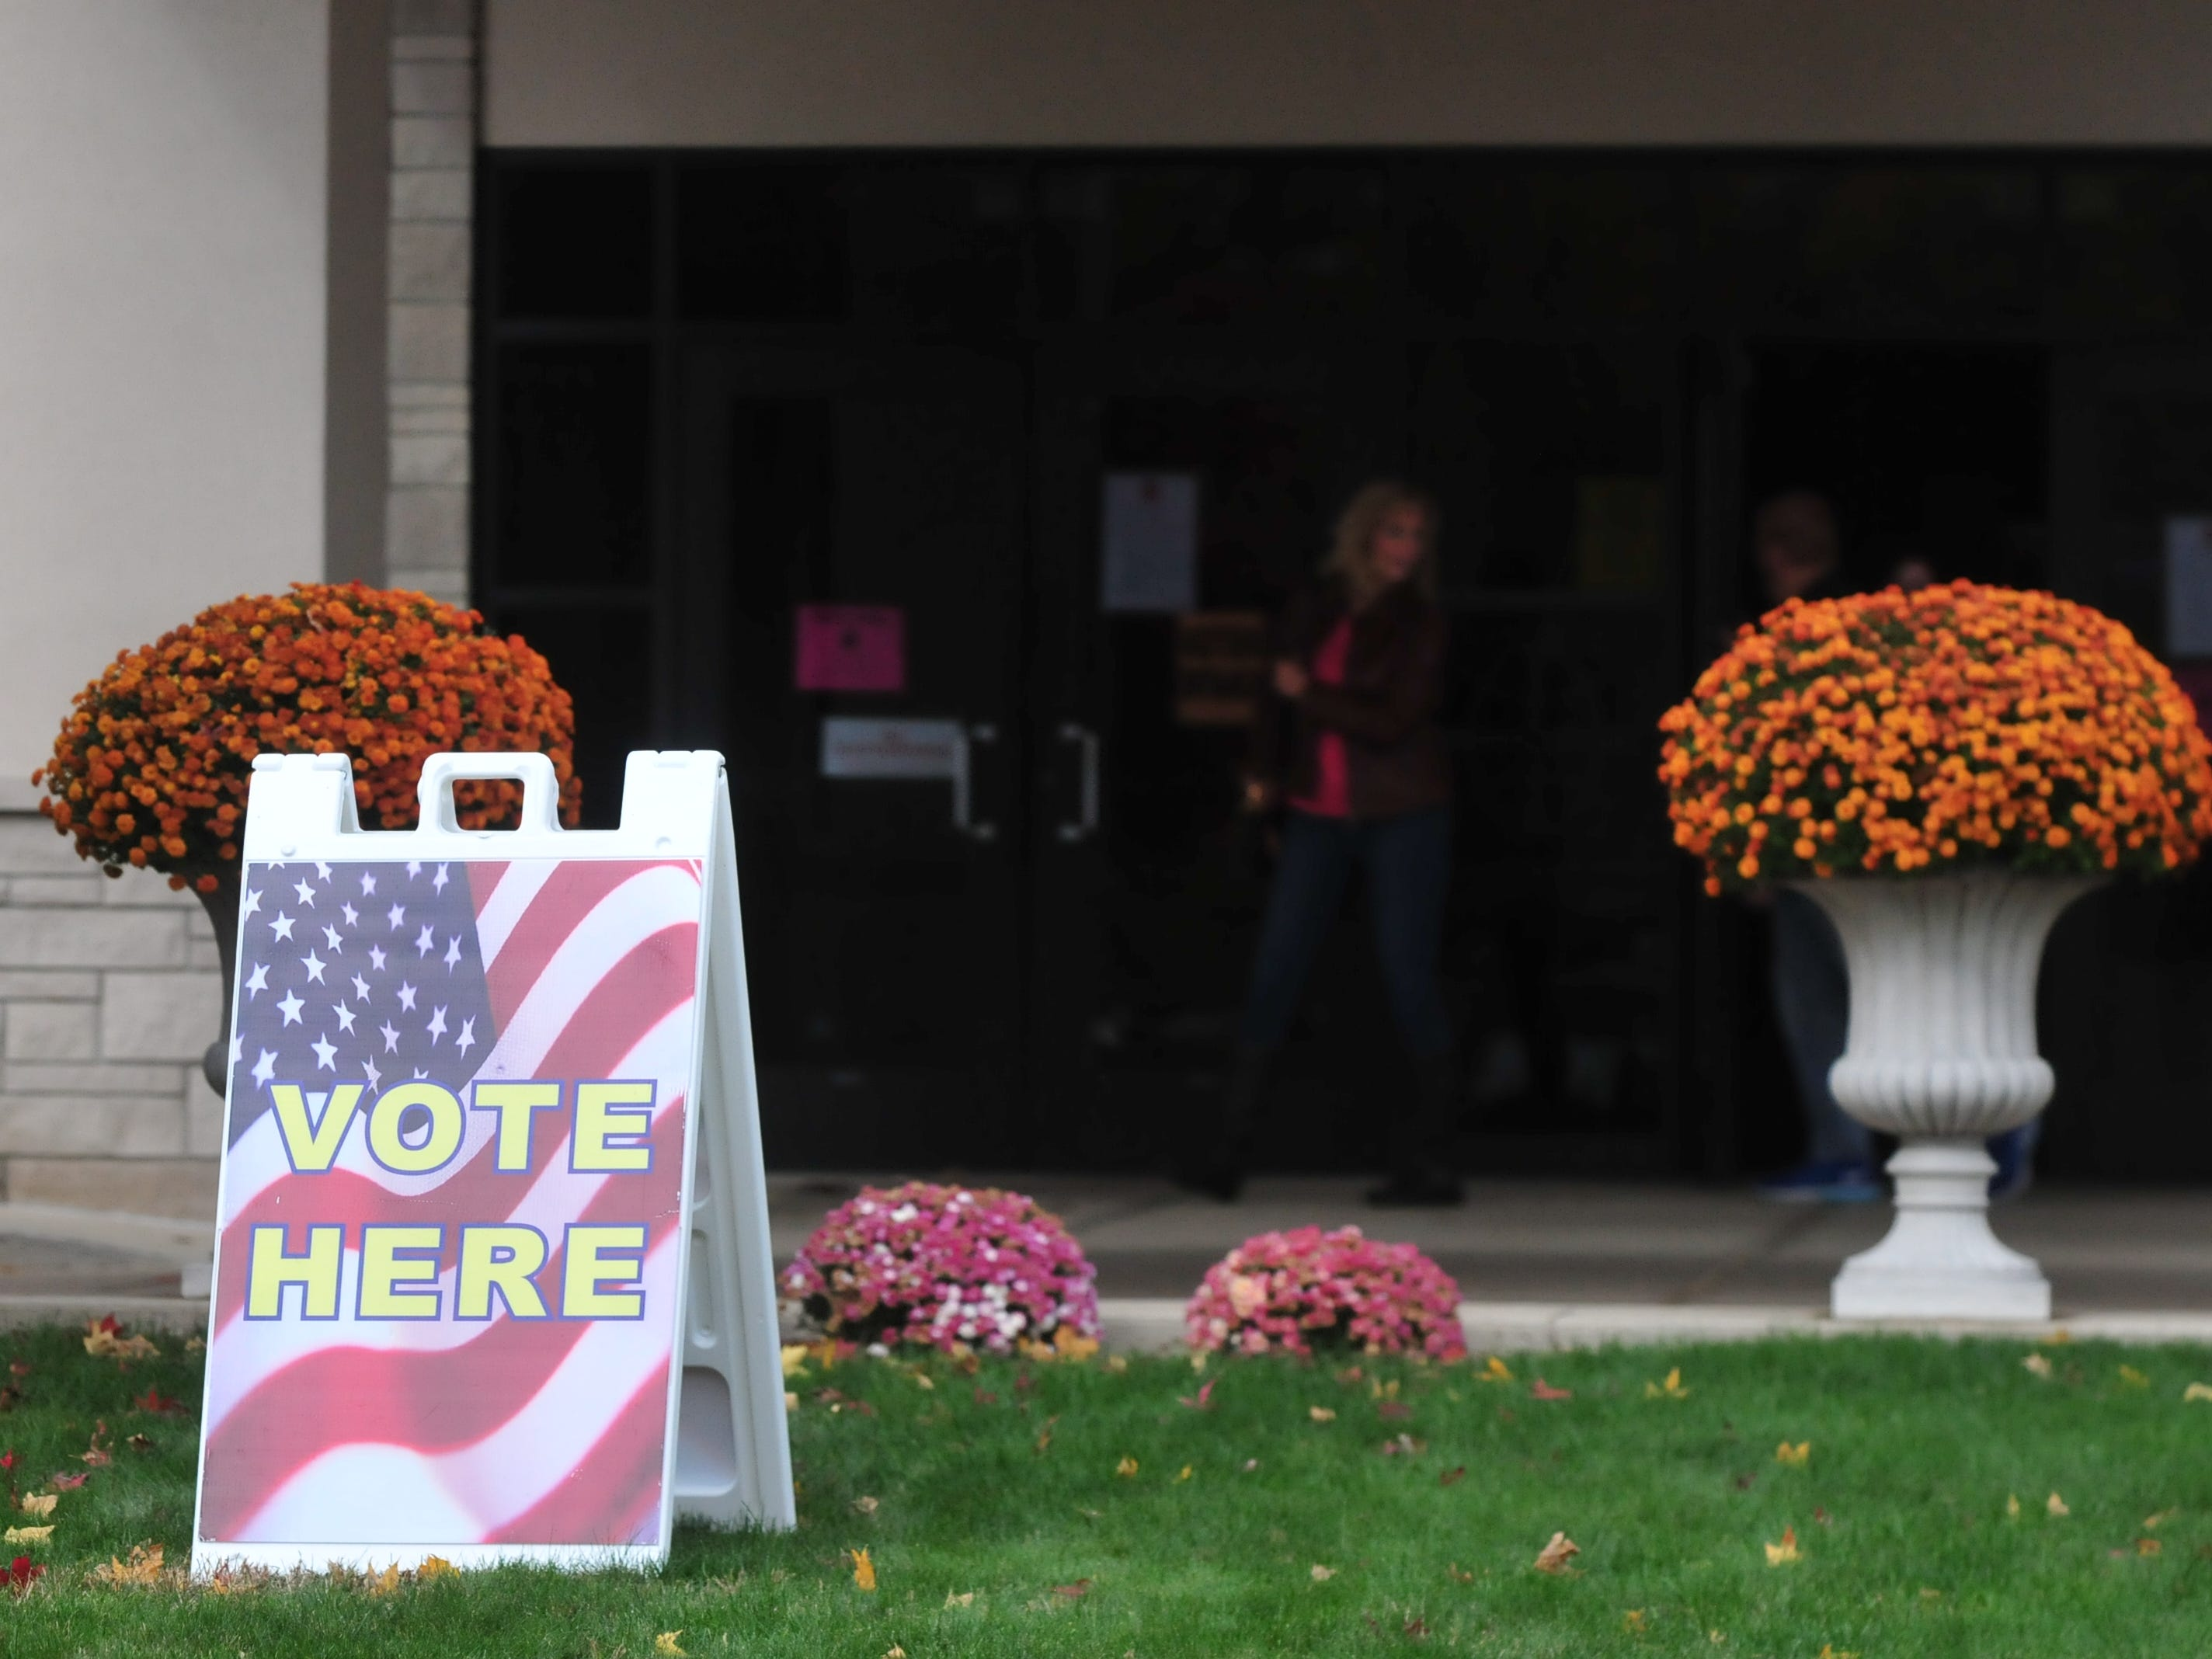 Wayne County voters participated in the general election Tuesday by voting at the vote center at First English Lutheran Church in Richmond.